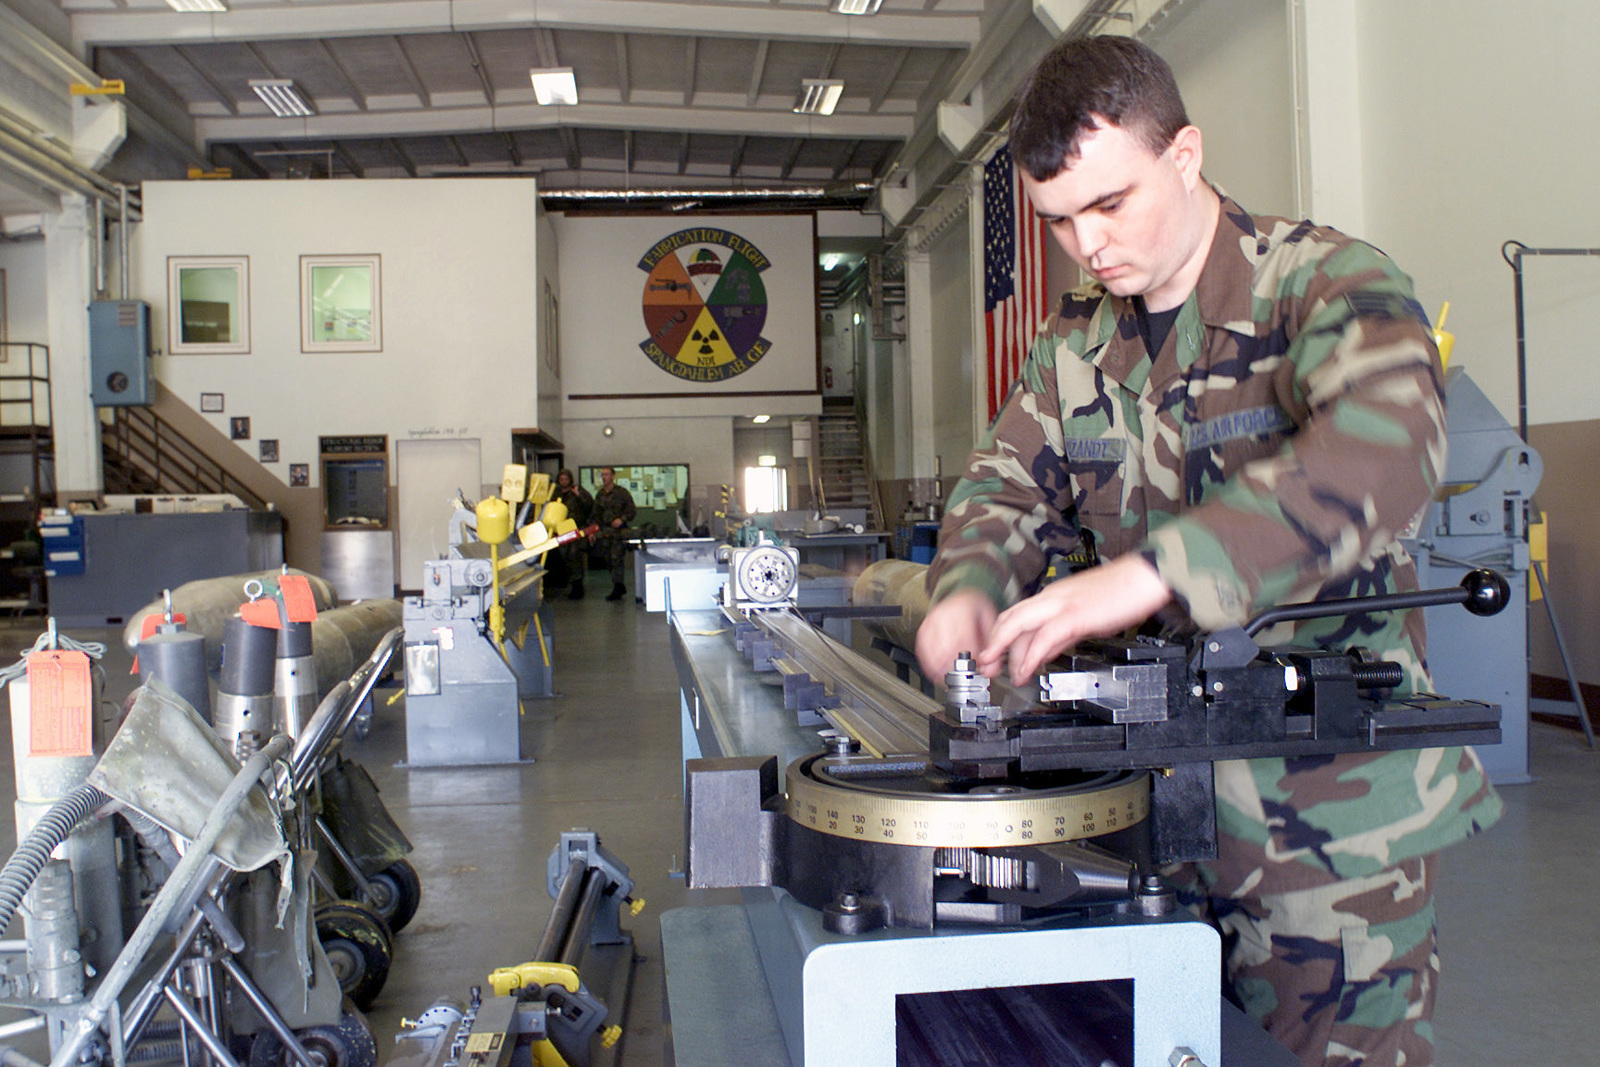 US Air Force (USAF) SENIOR AIRMAN (SRA) Chris Vanzandt, Aircraft Structures Journeyman, 52nd Equipment Maintenance Squadron (EMS), uses metal tubing to create an aircraft drain line inside the maintenance shop at Spangdahlem Air Base (AB), Germany